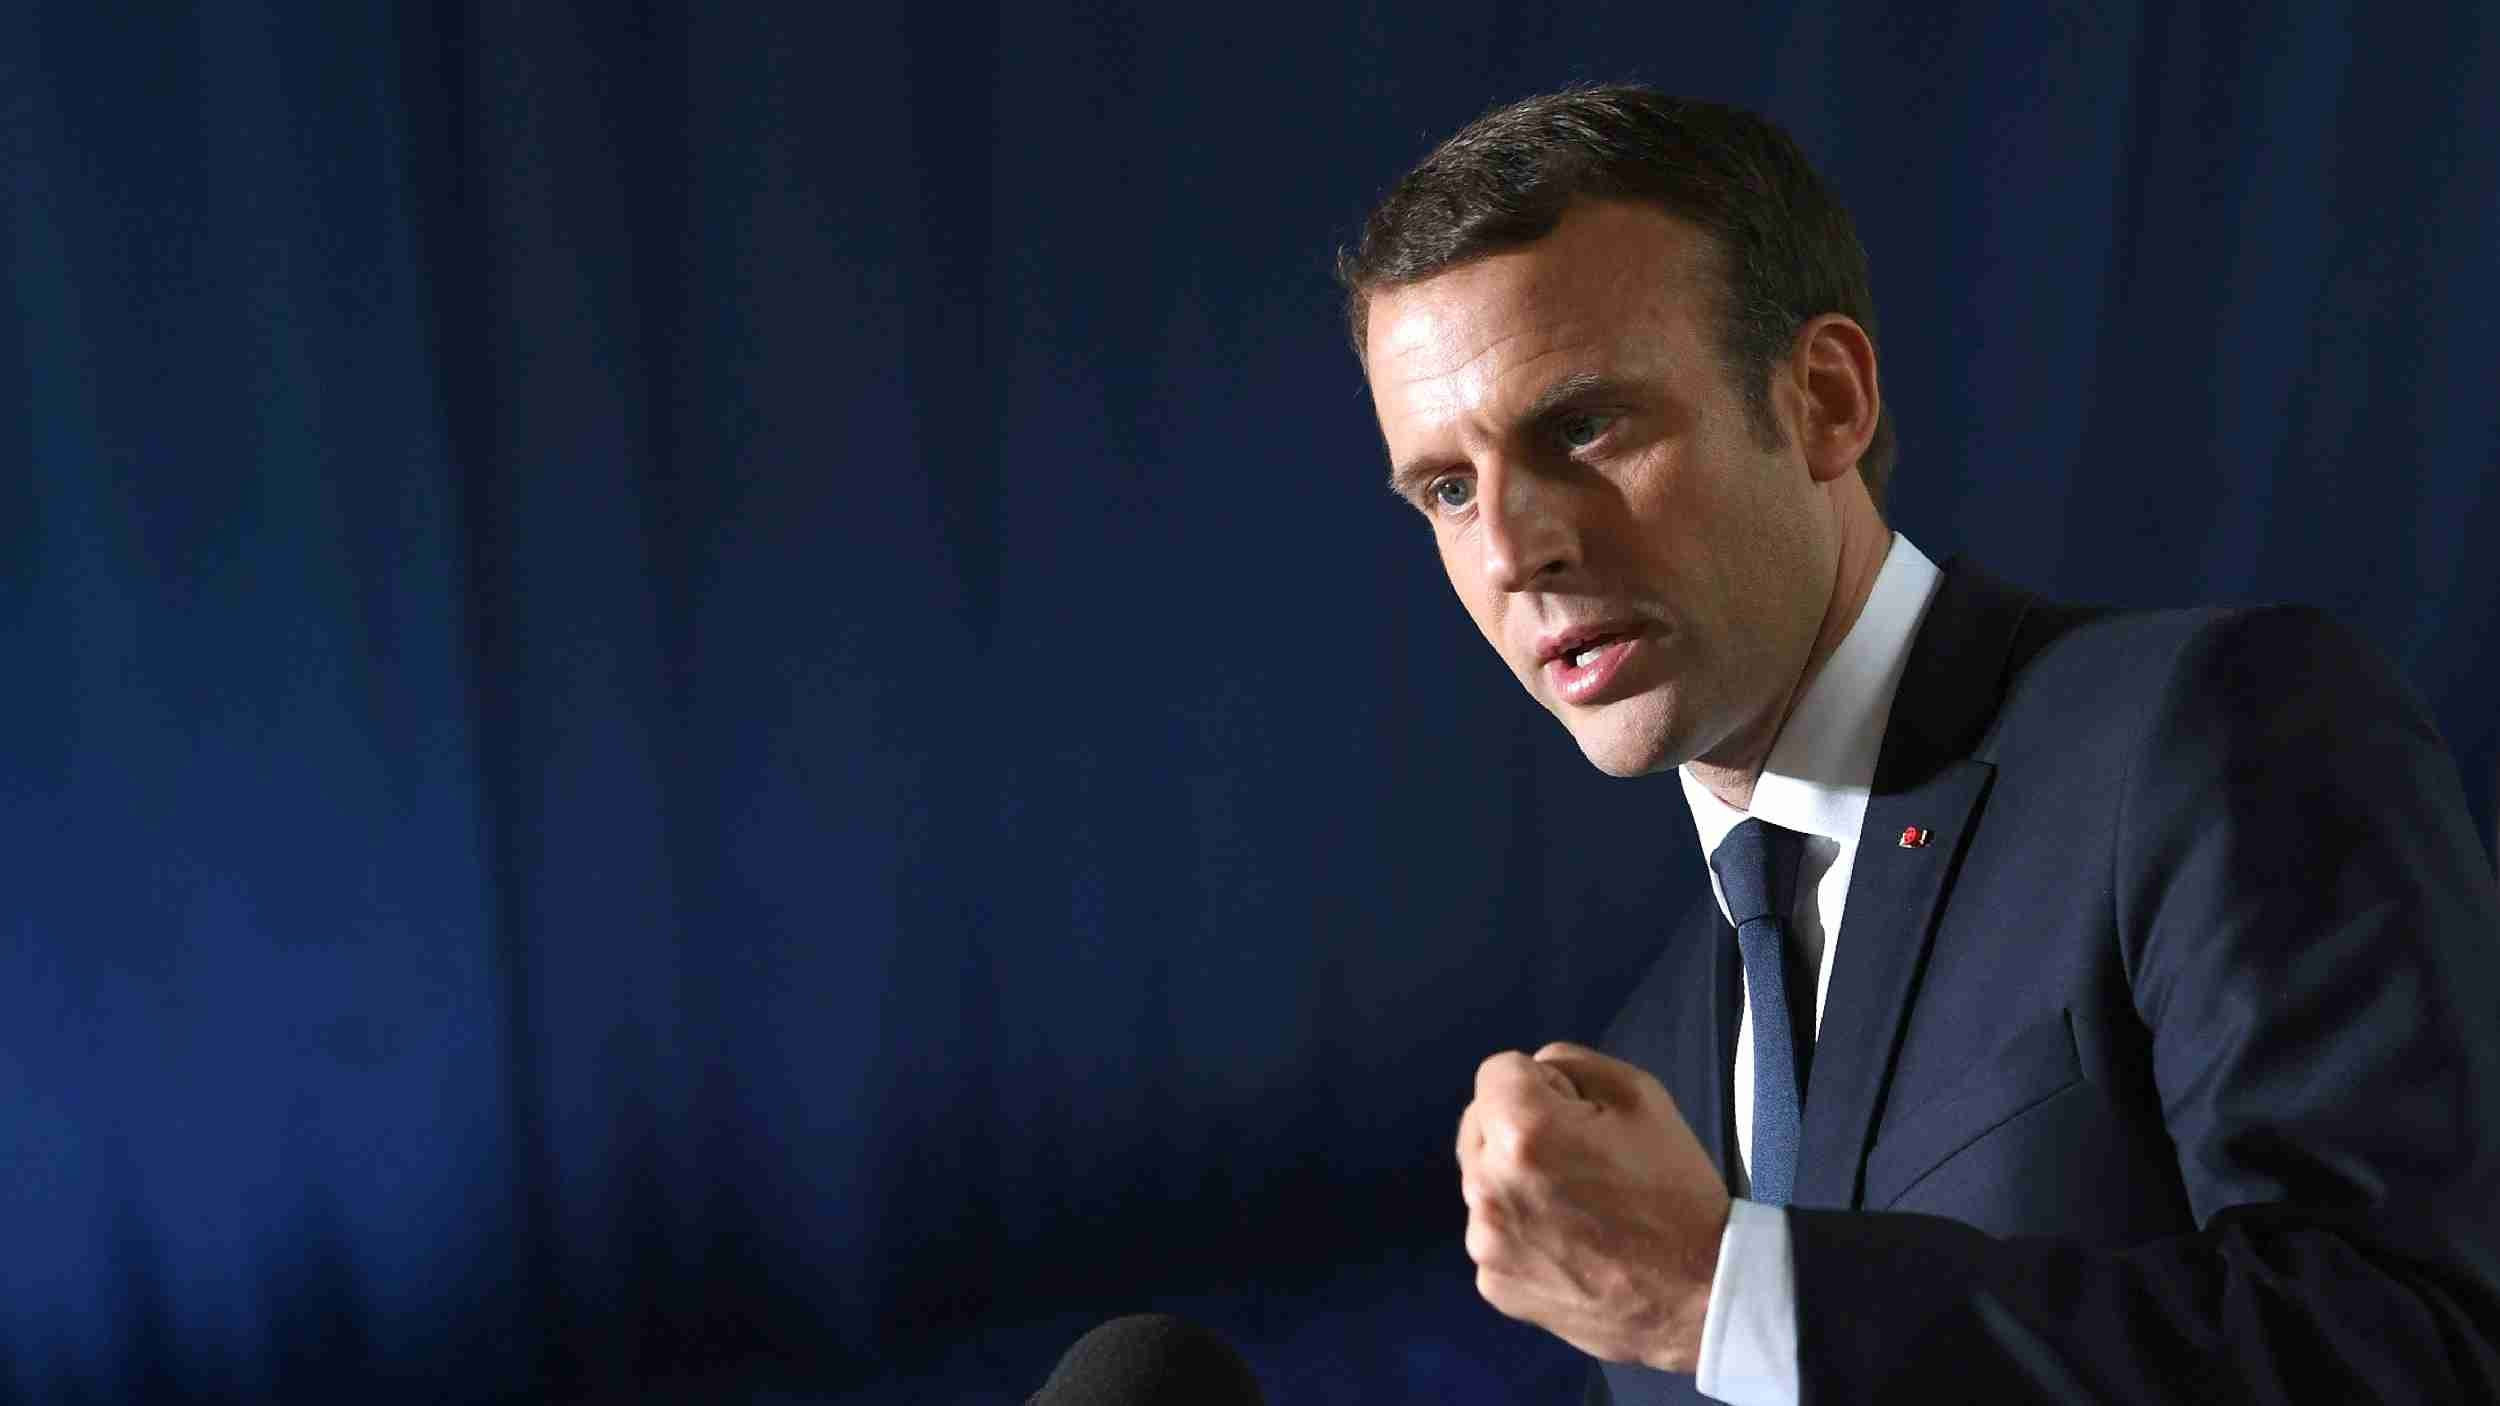 French president expresses solidarity with Germany after fatal shootings